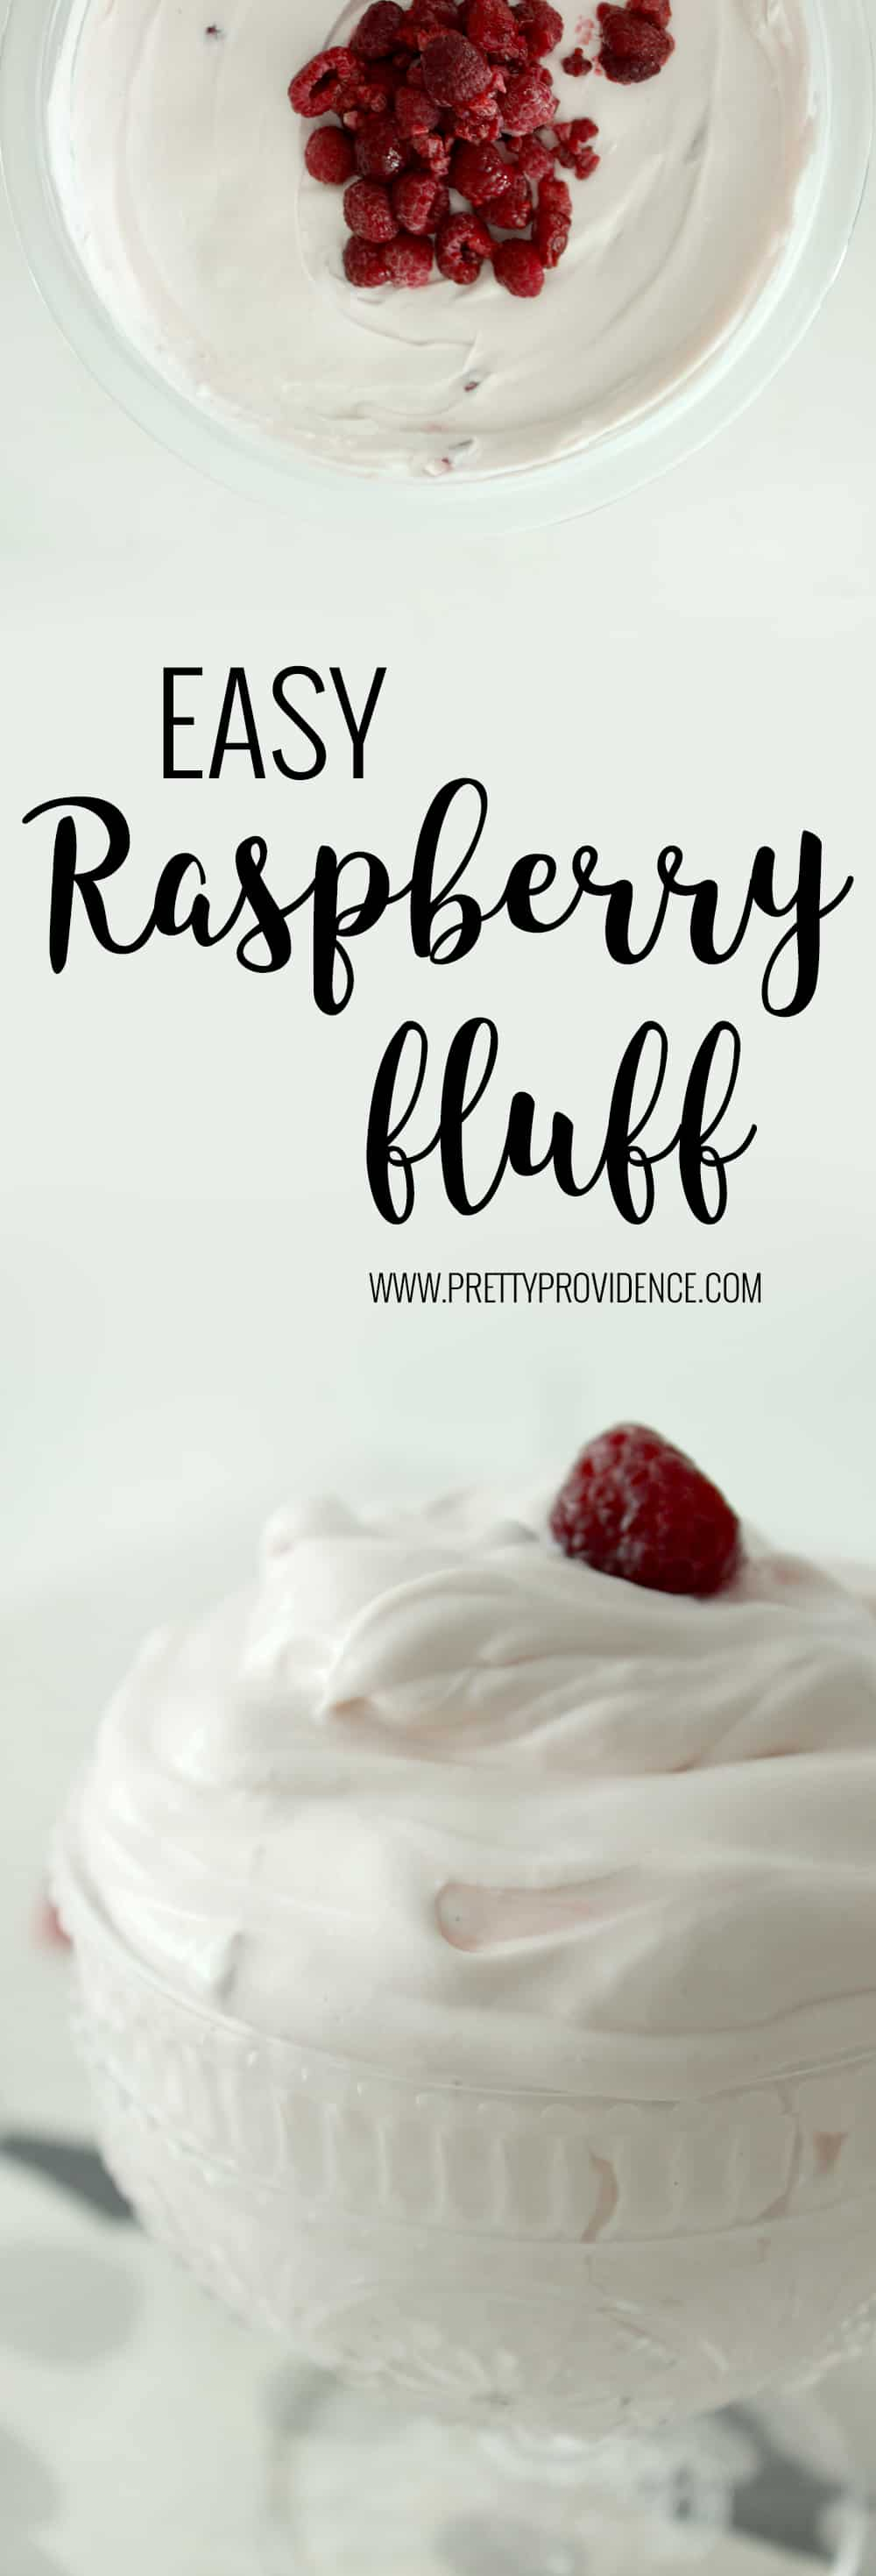 Delicious raspberry fluff! Perfect side for brunch or any BBQ! Everyone always raves about it and it is SO easy to whip up!